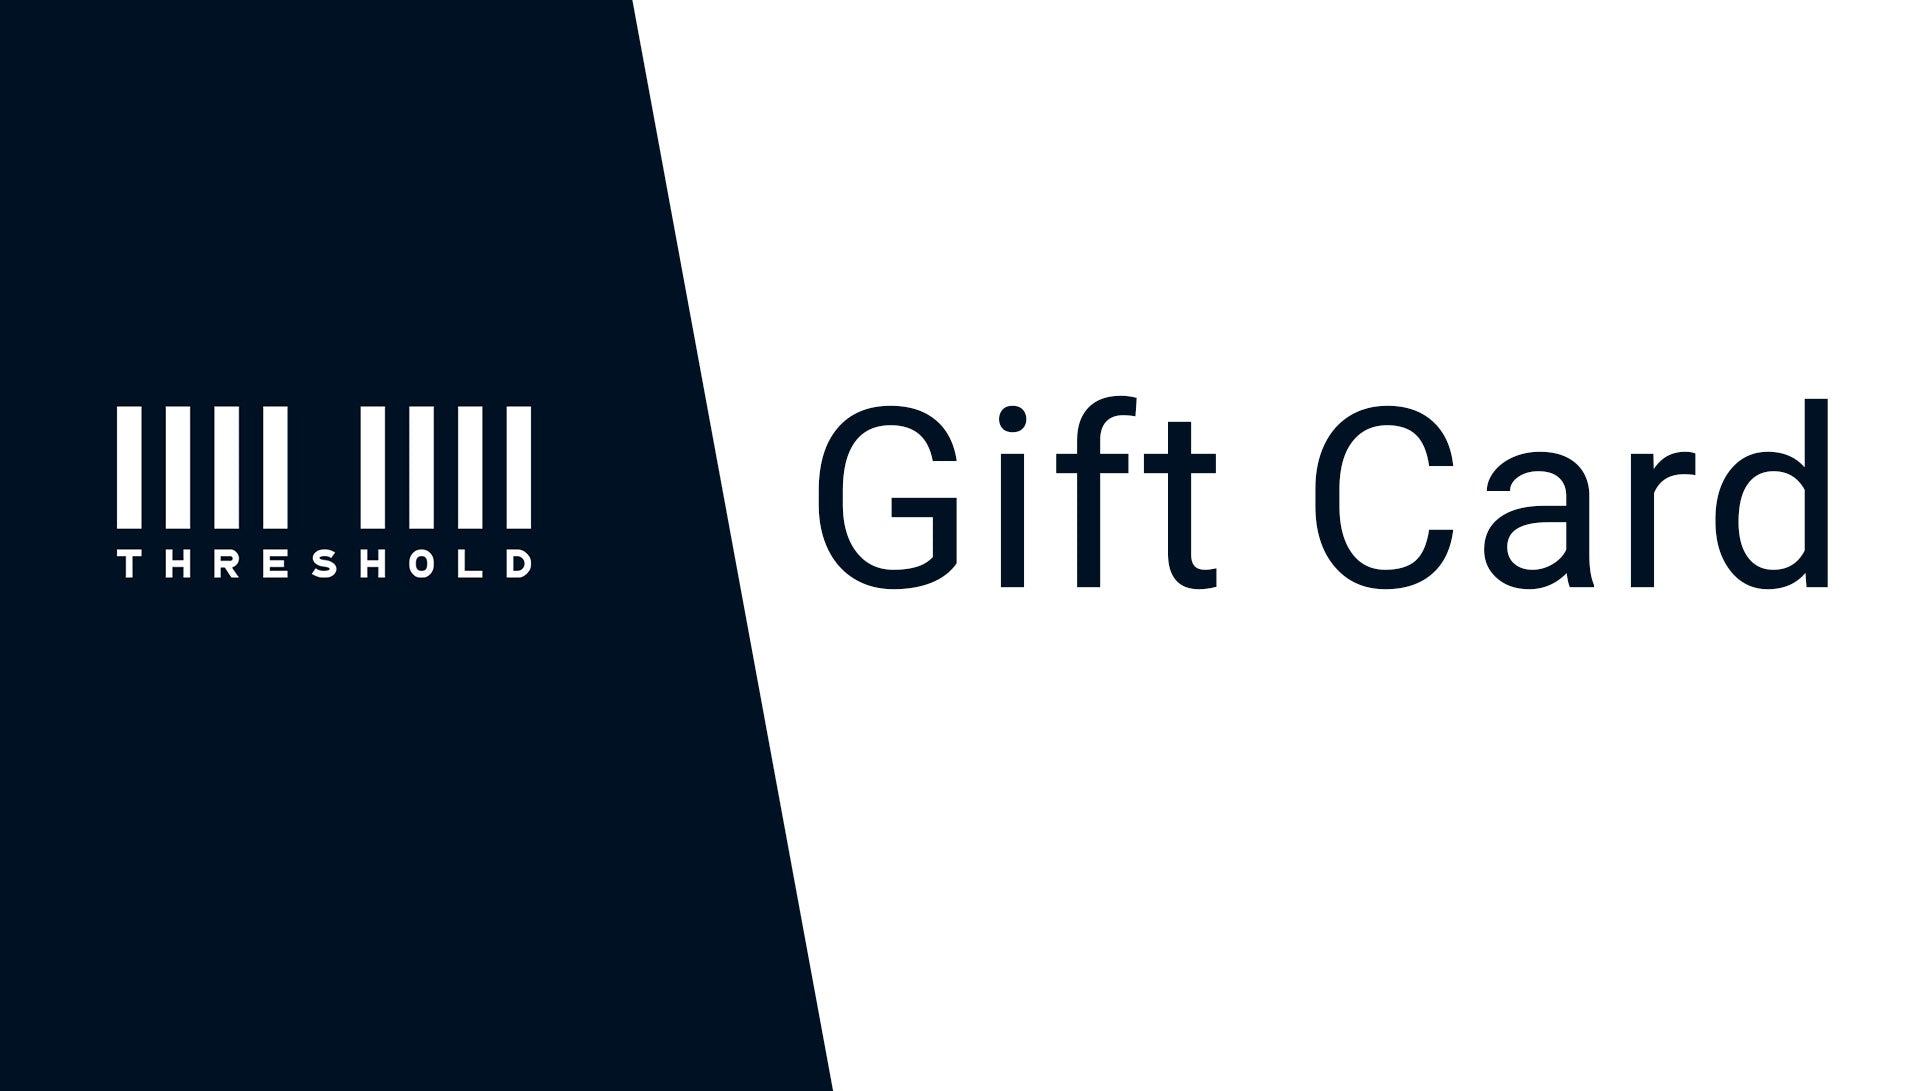 Threshold store Gift Card